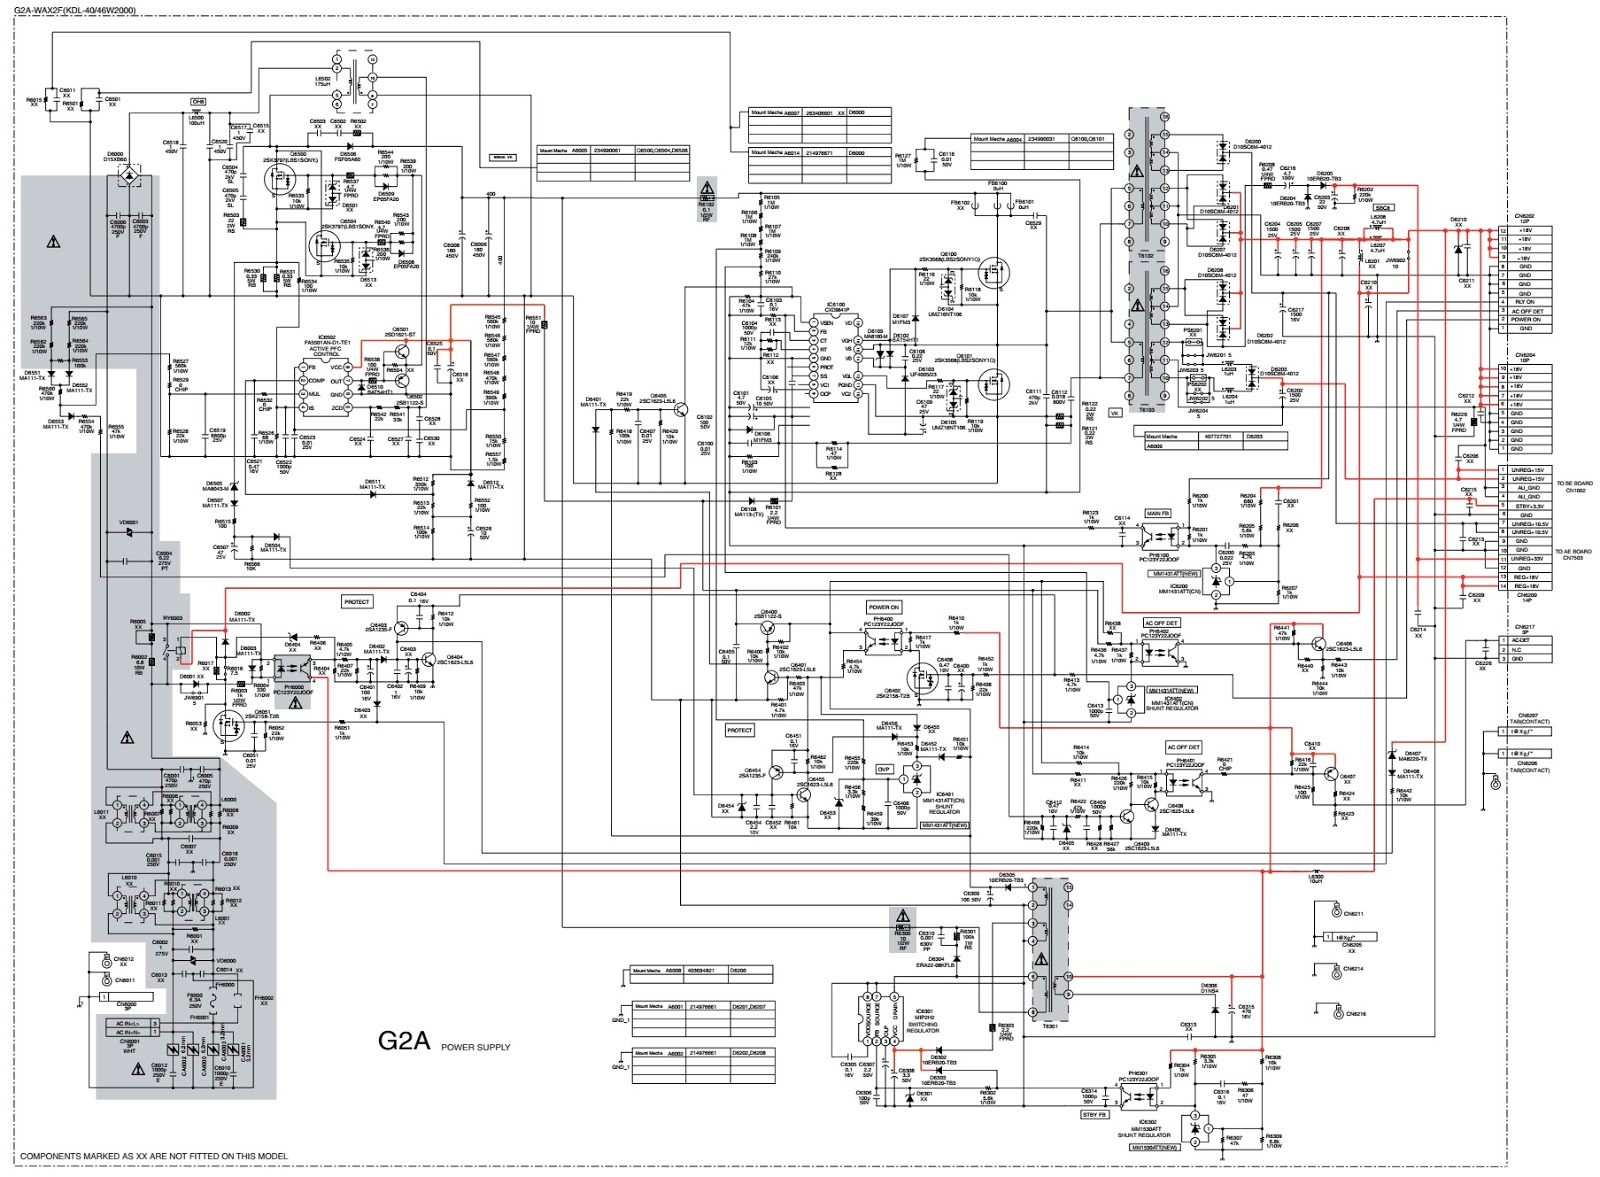 small resolution of diagram sony led tv diagram full version hd quality tv diagram konka led lcd tv 32f3000c supra stv lcs26740 tv schematic power and